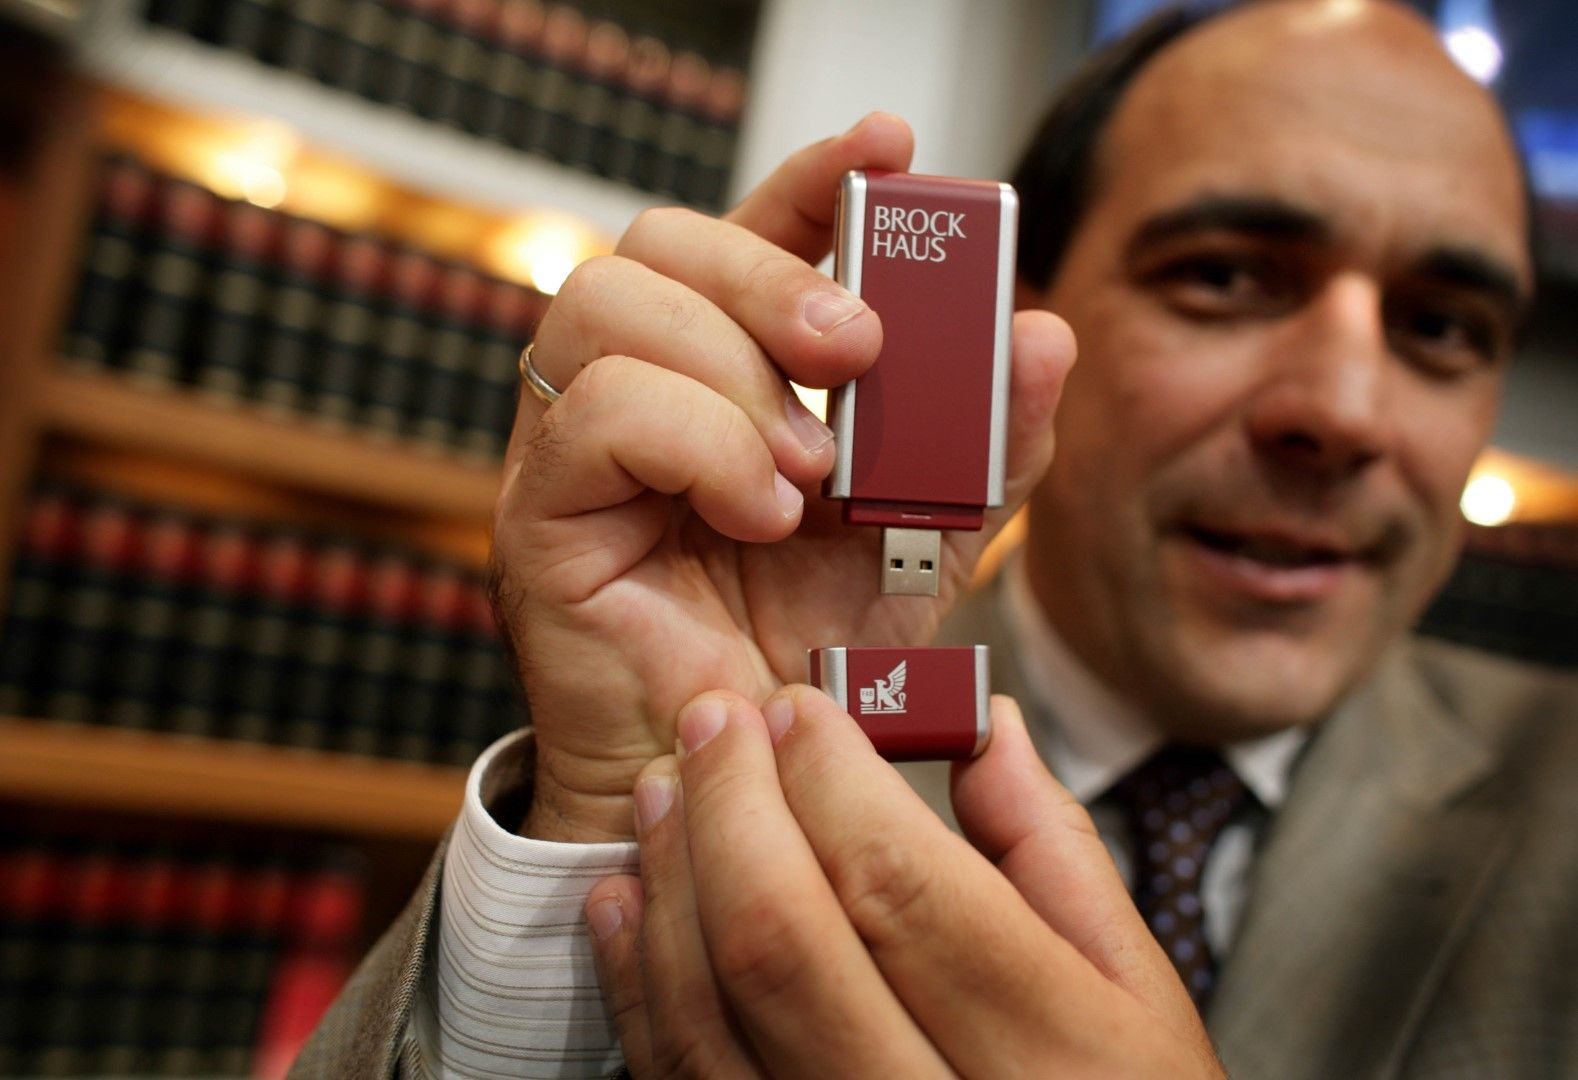 In mid-2000s, German publisher Brockhaus was selling its famed encyclopedia on flash drives, in addition to optical discs and print.